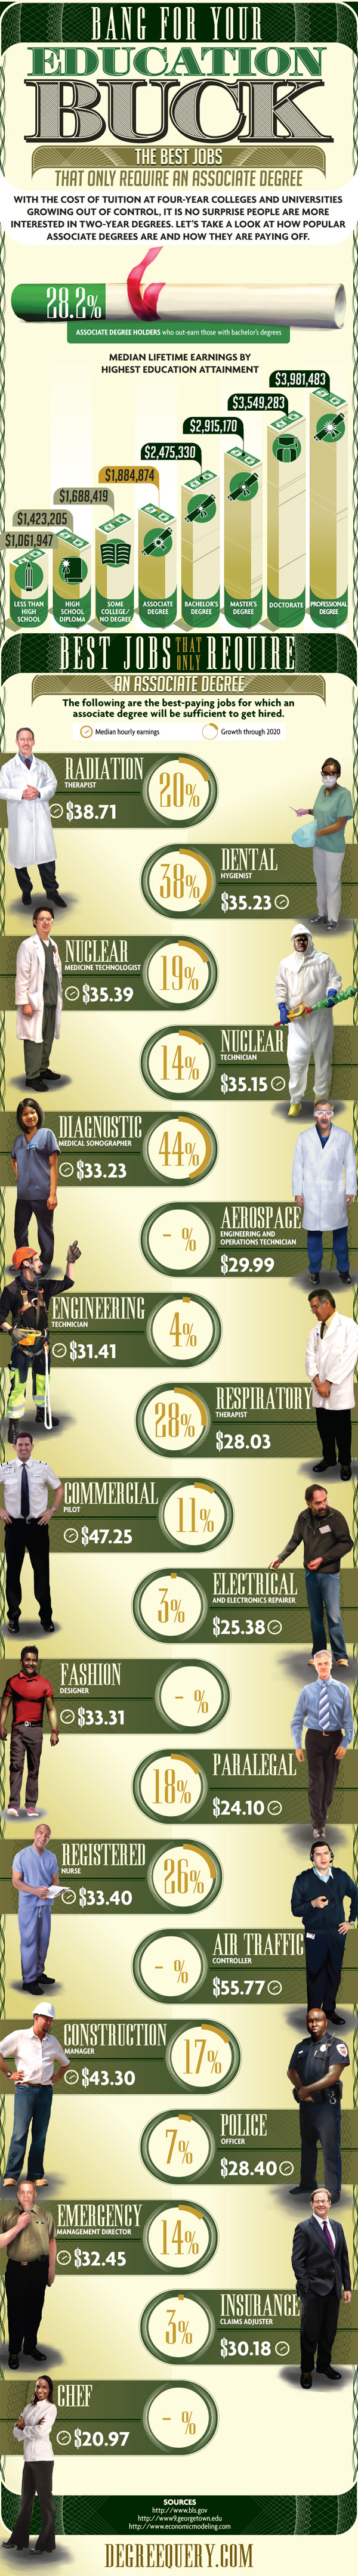 Associate Degree Jobs-Infographic